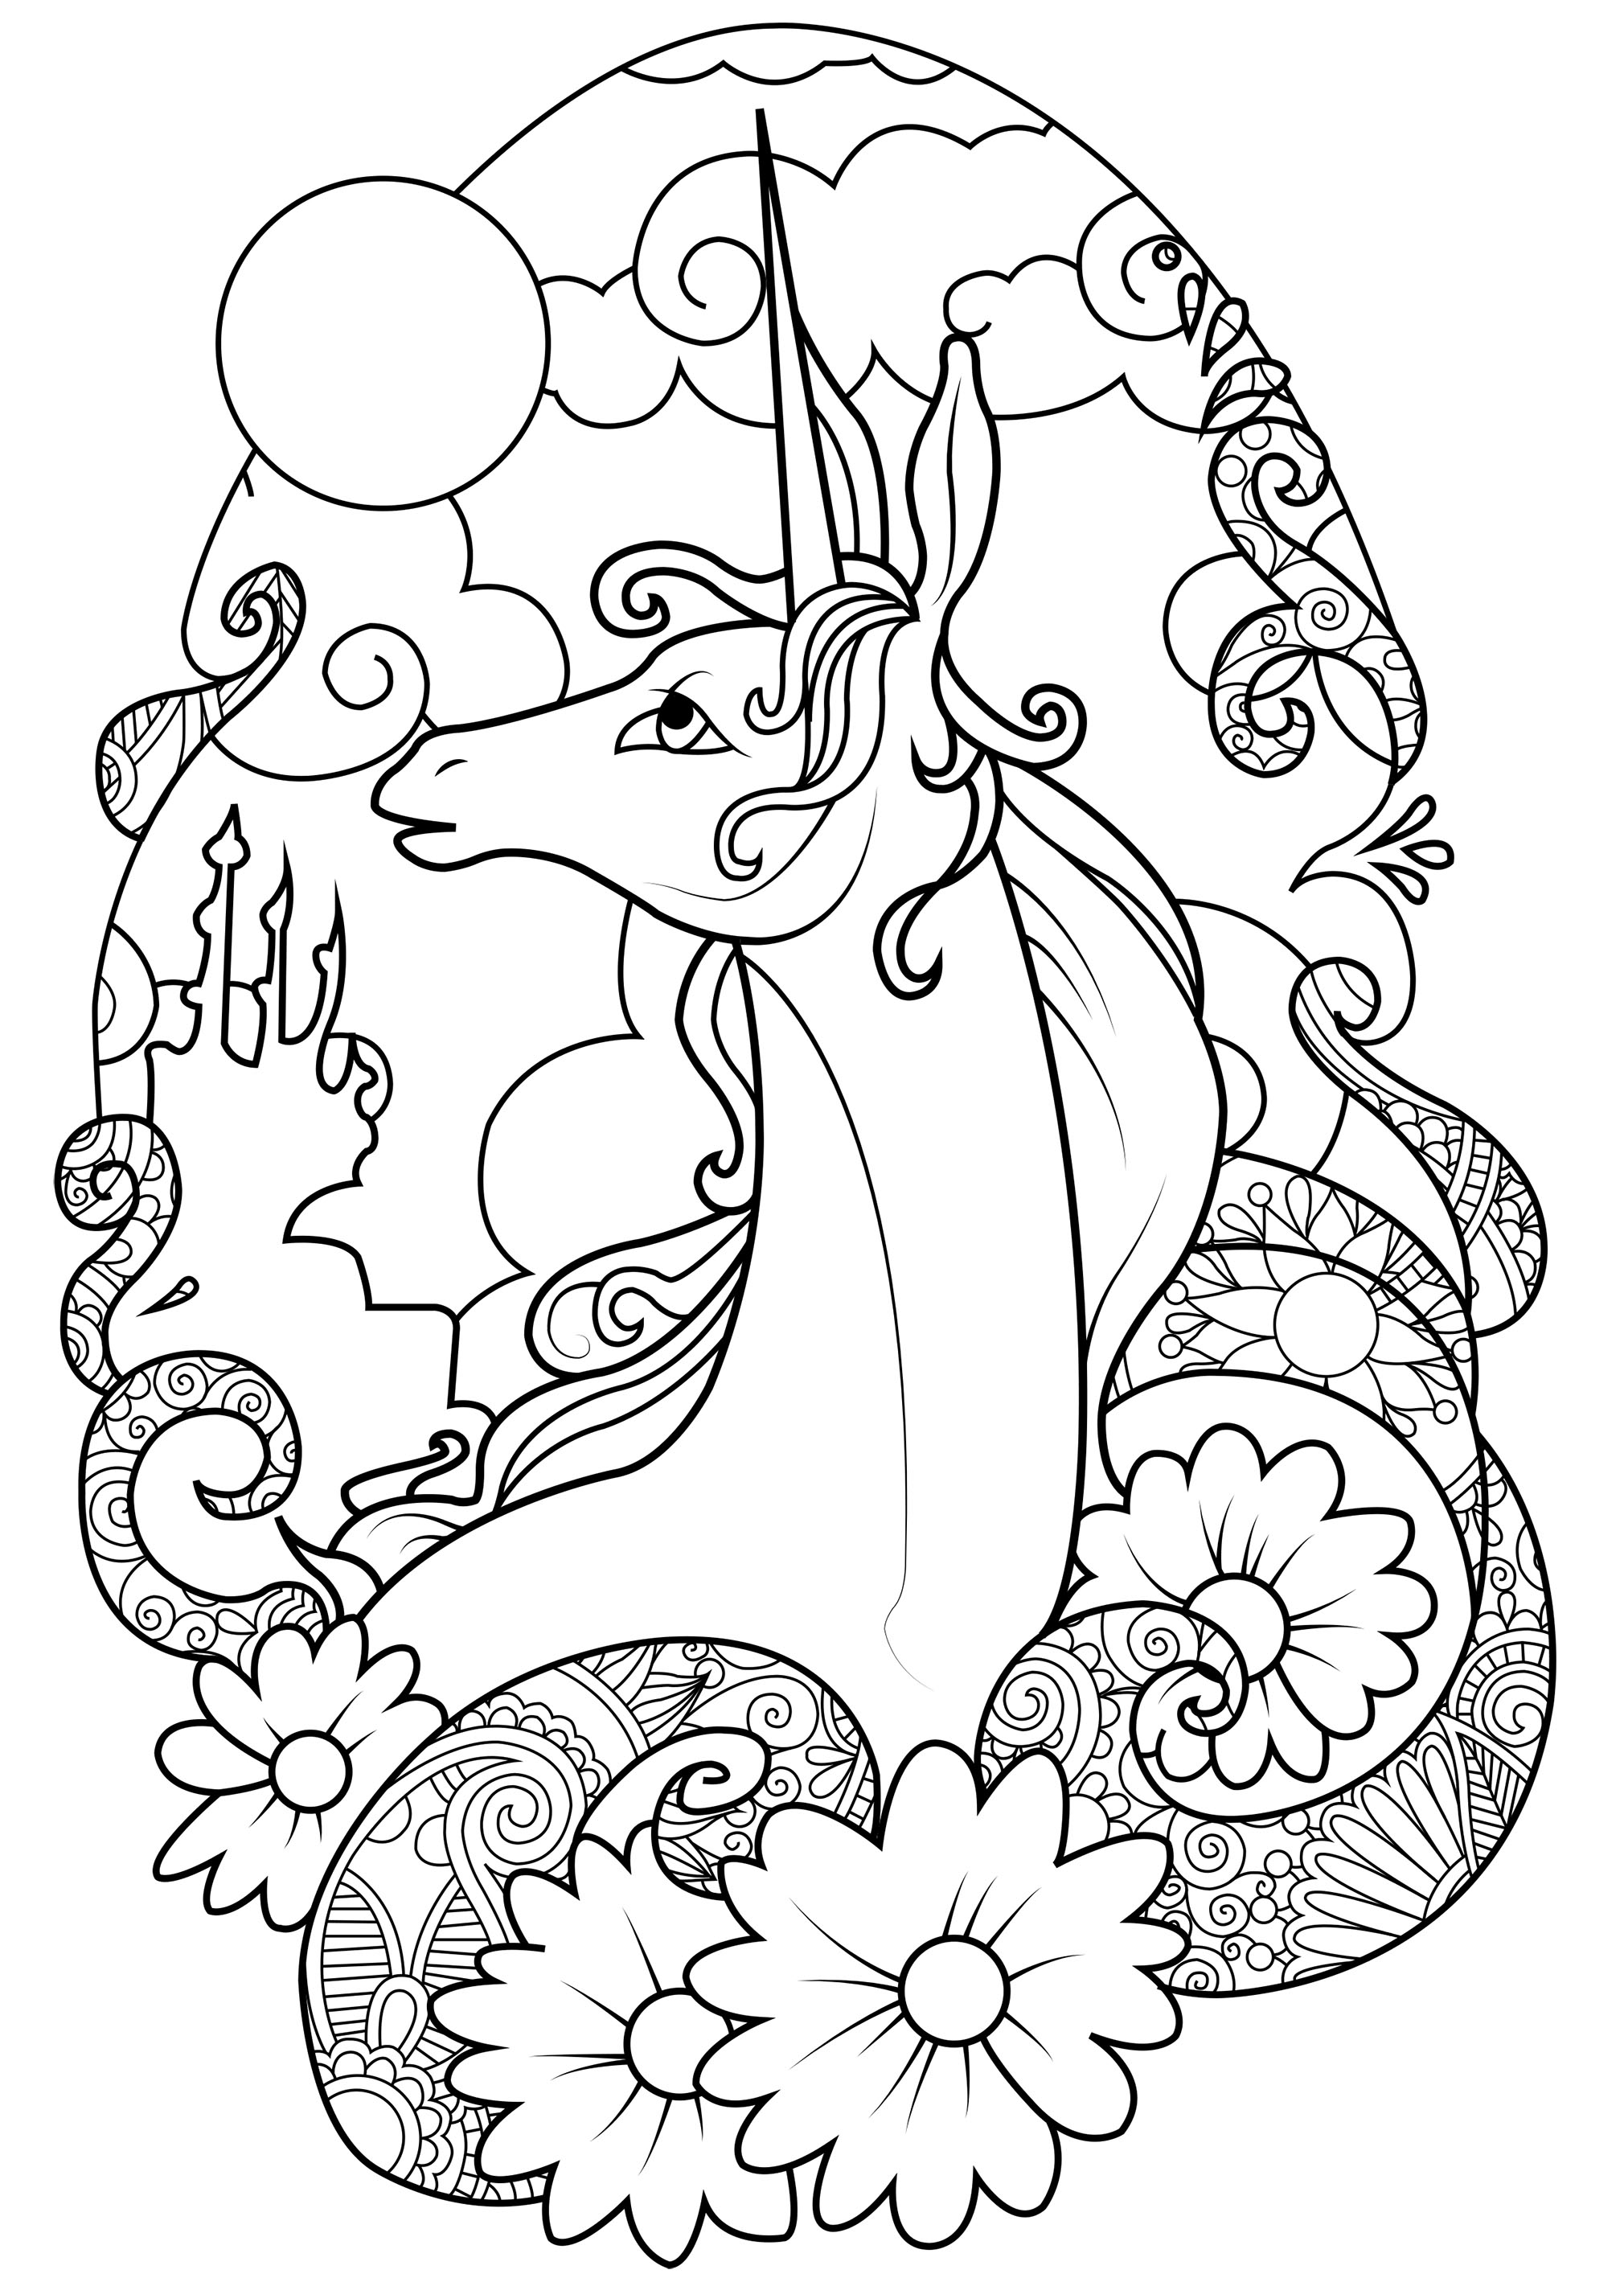 coloring pages for adults unicorn unicorn coloring pages for adults best coloring pages coloring unicorn adults for pages